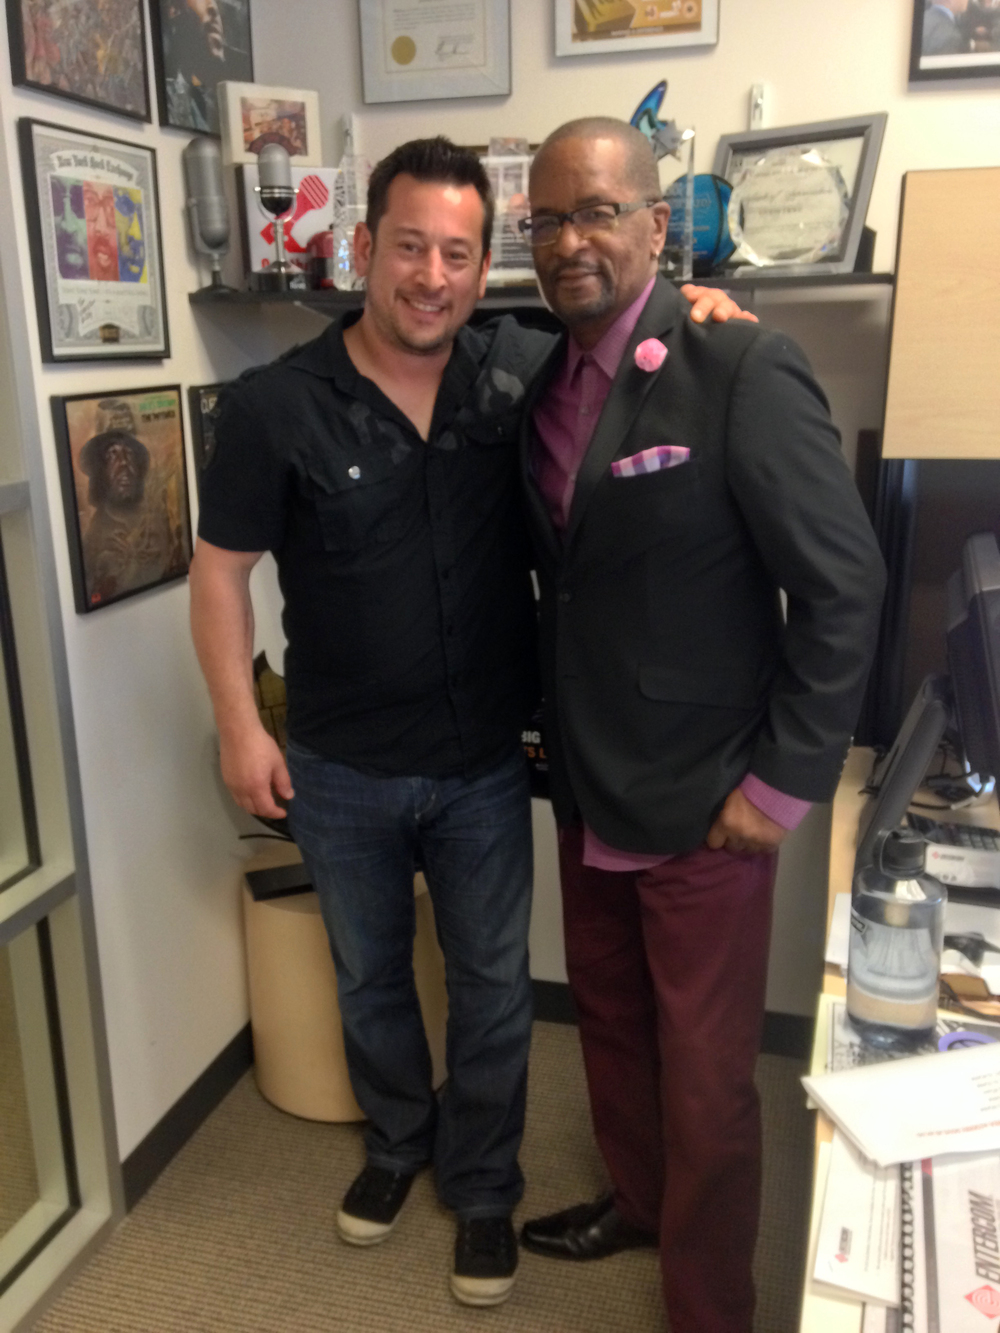 Jason Wall, Founder/Executive Director of FYR, with Gerry Dove, host of Listen Up Bay Area